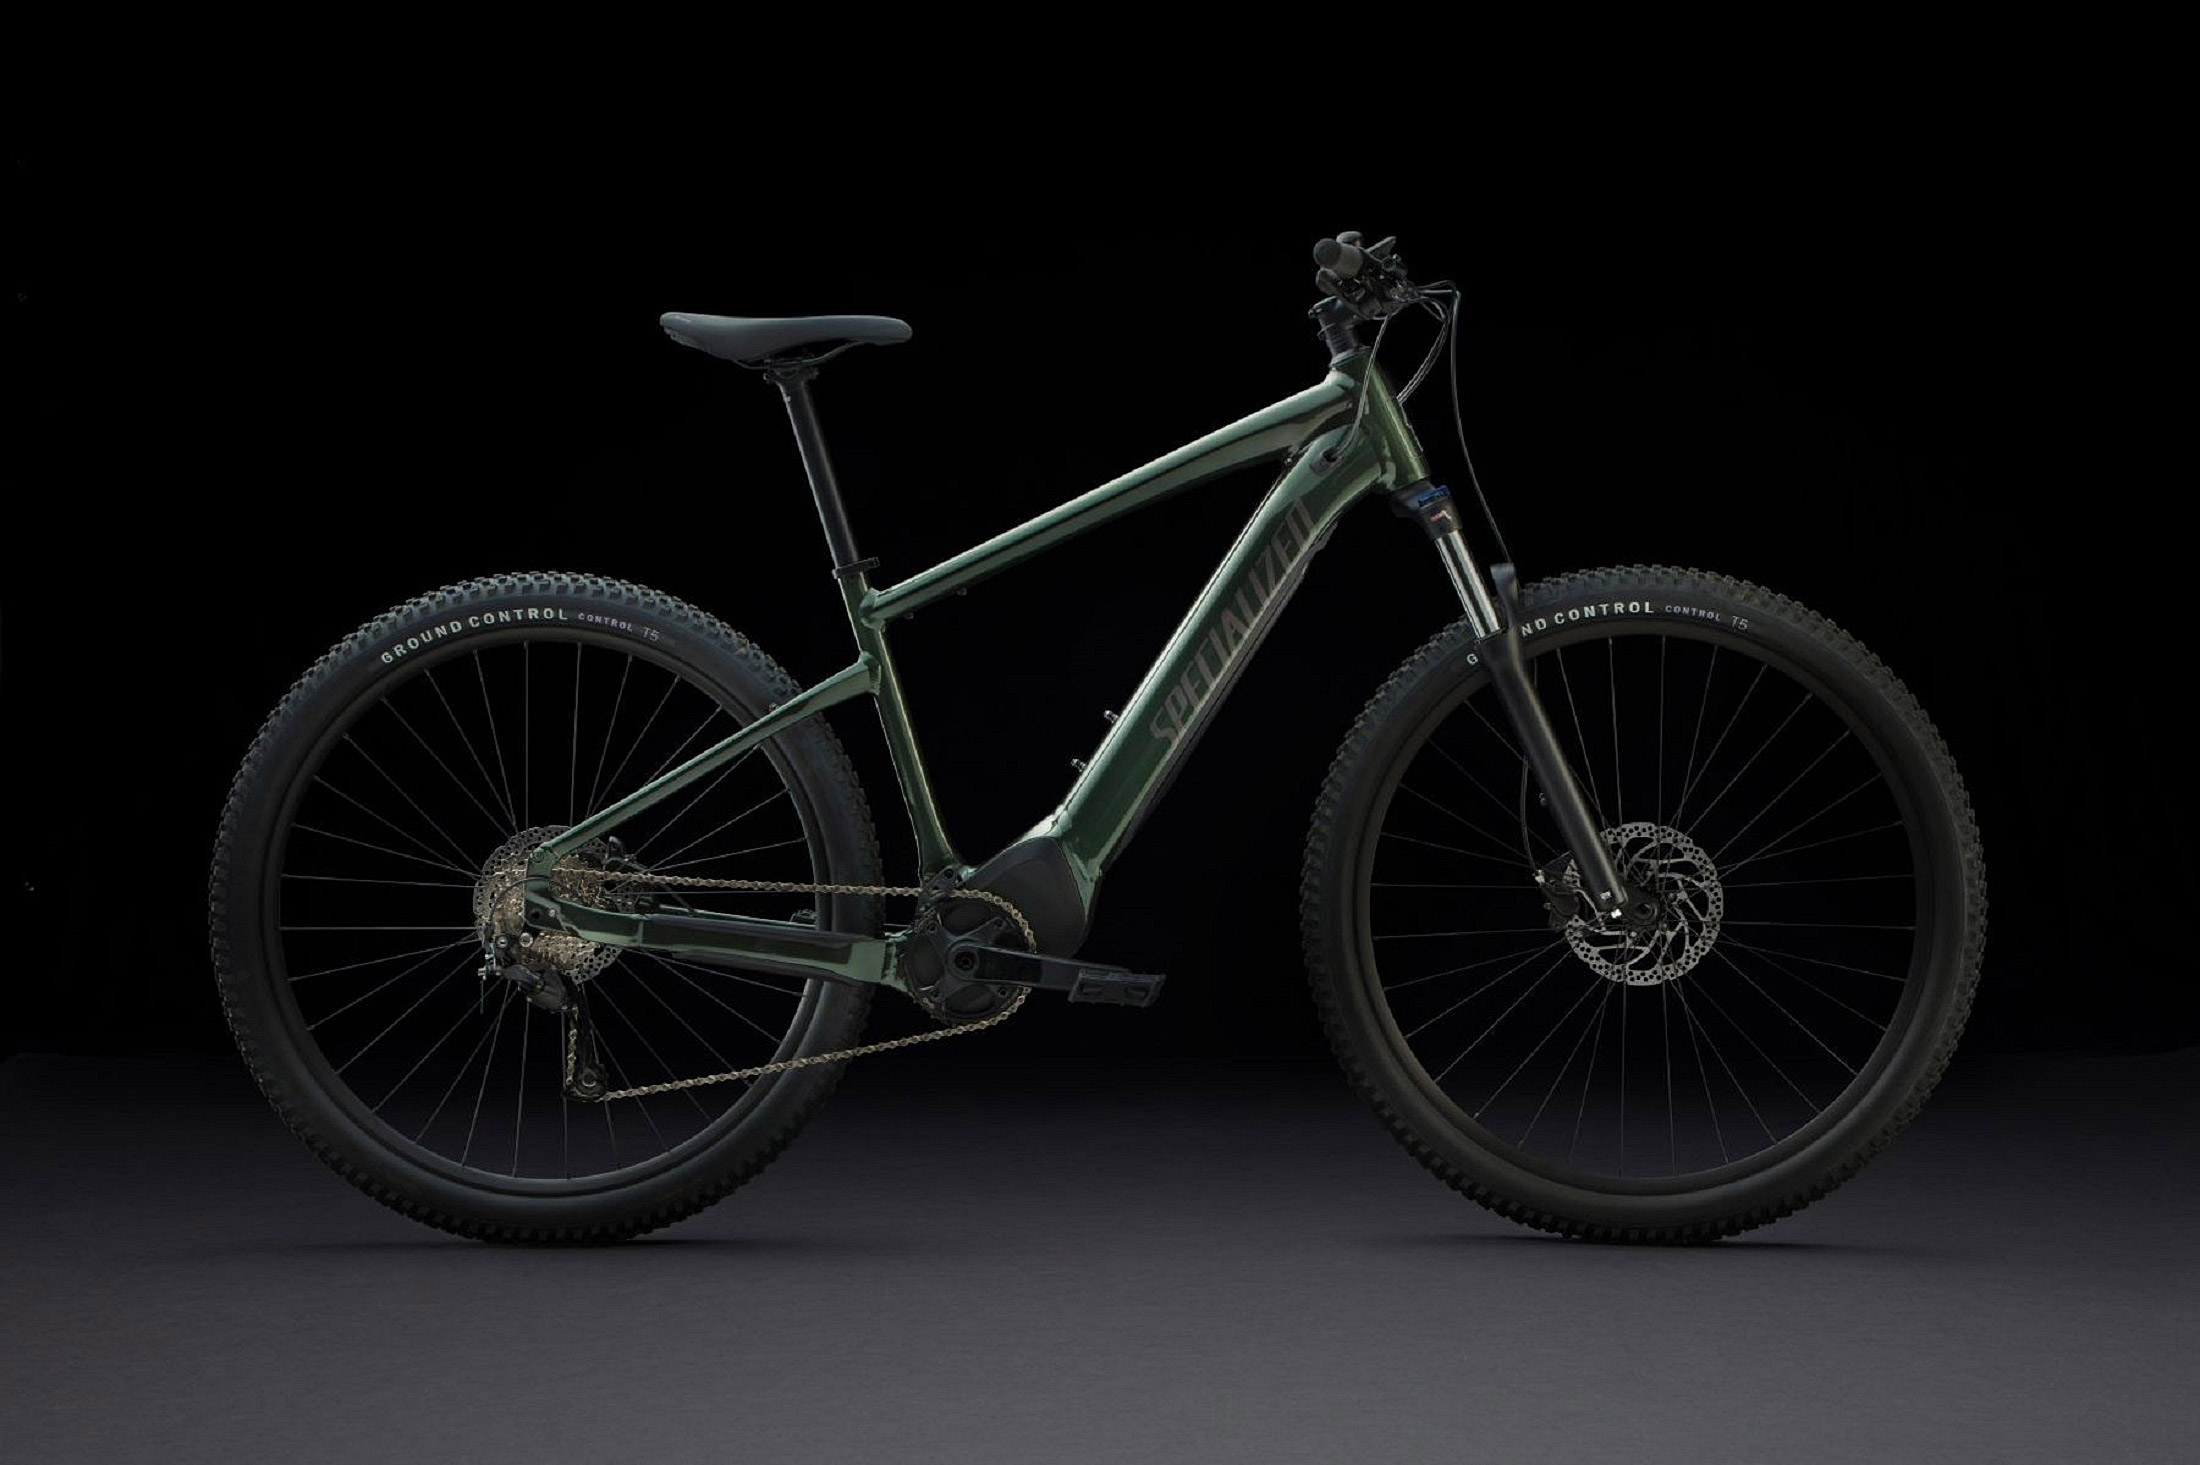 Specialized Introduces Fresh Lineup of Turbo E-Bikes at werd.com